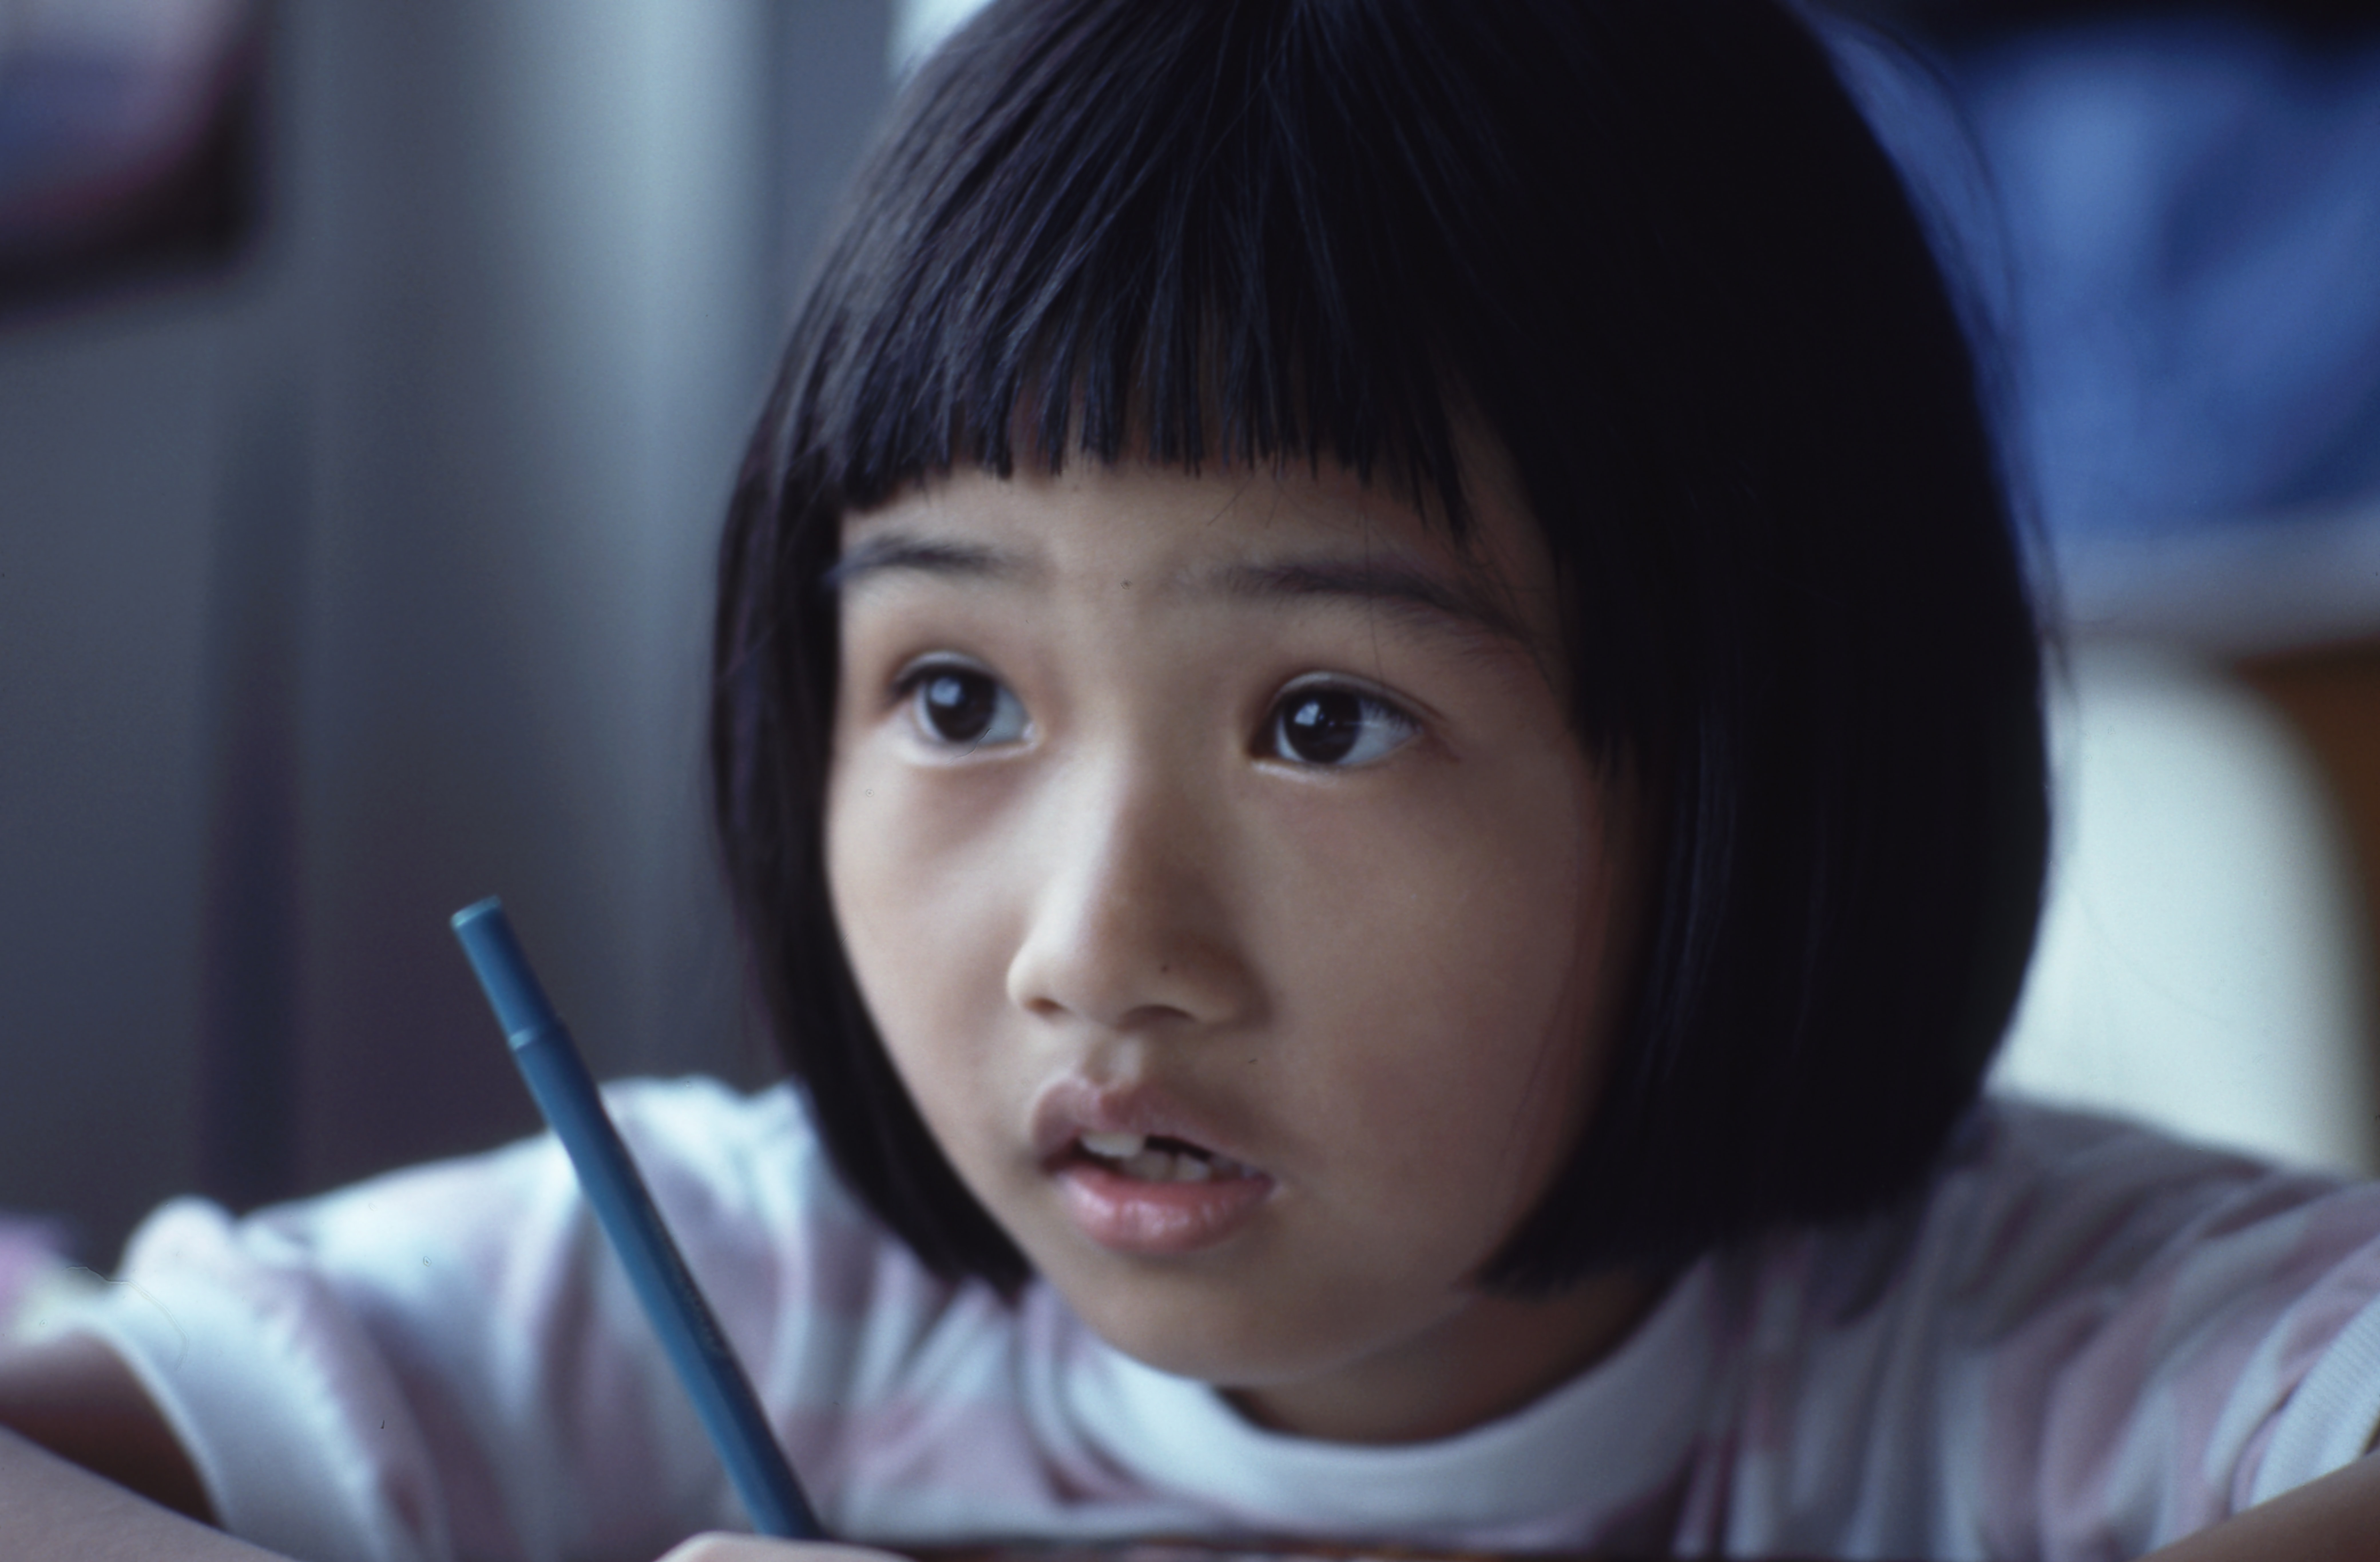 A child concentrating hard at school